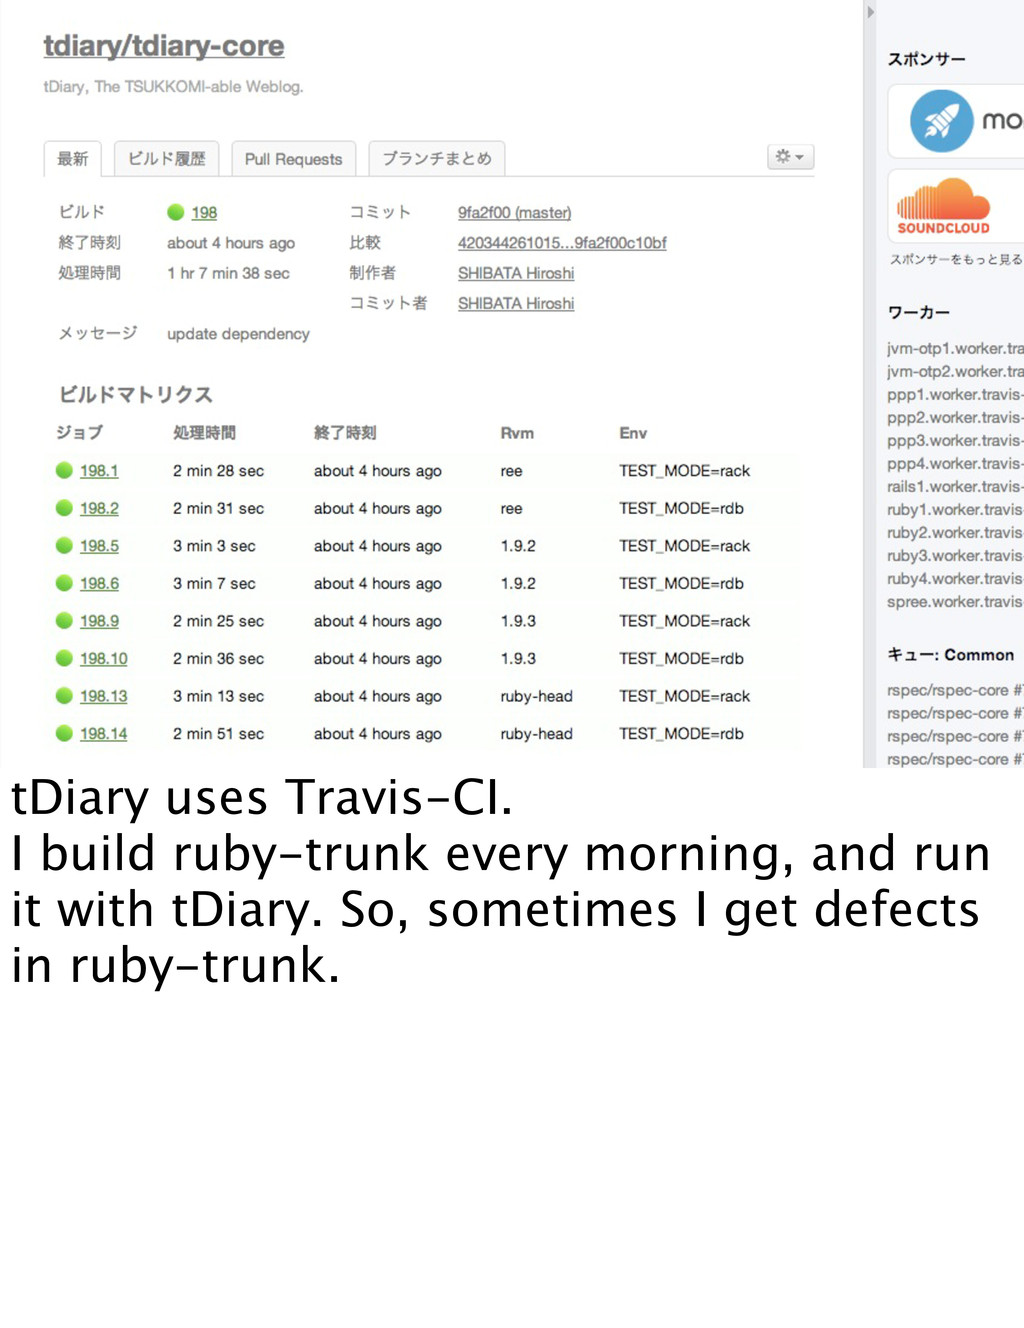 tDiary uses Travis-CI. I build ruby-trunk every...